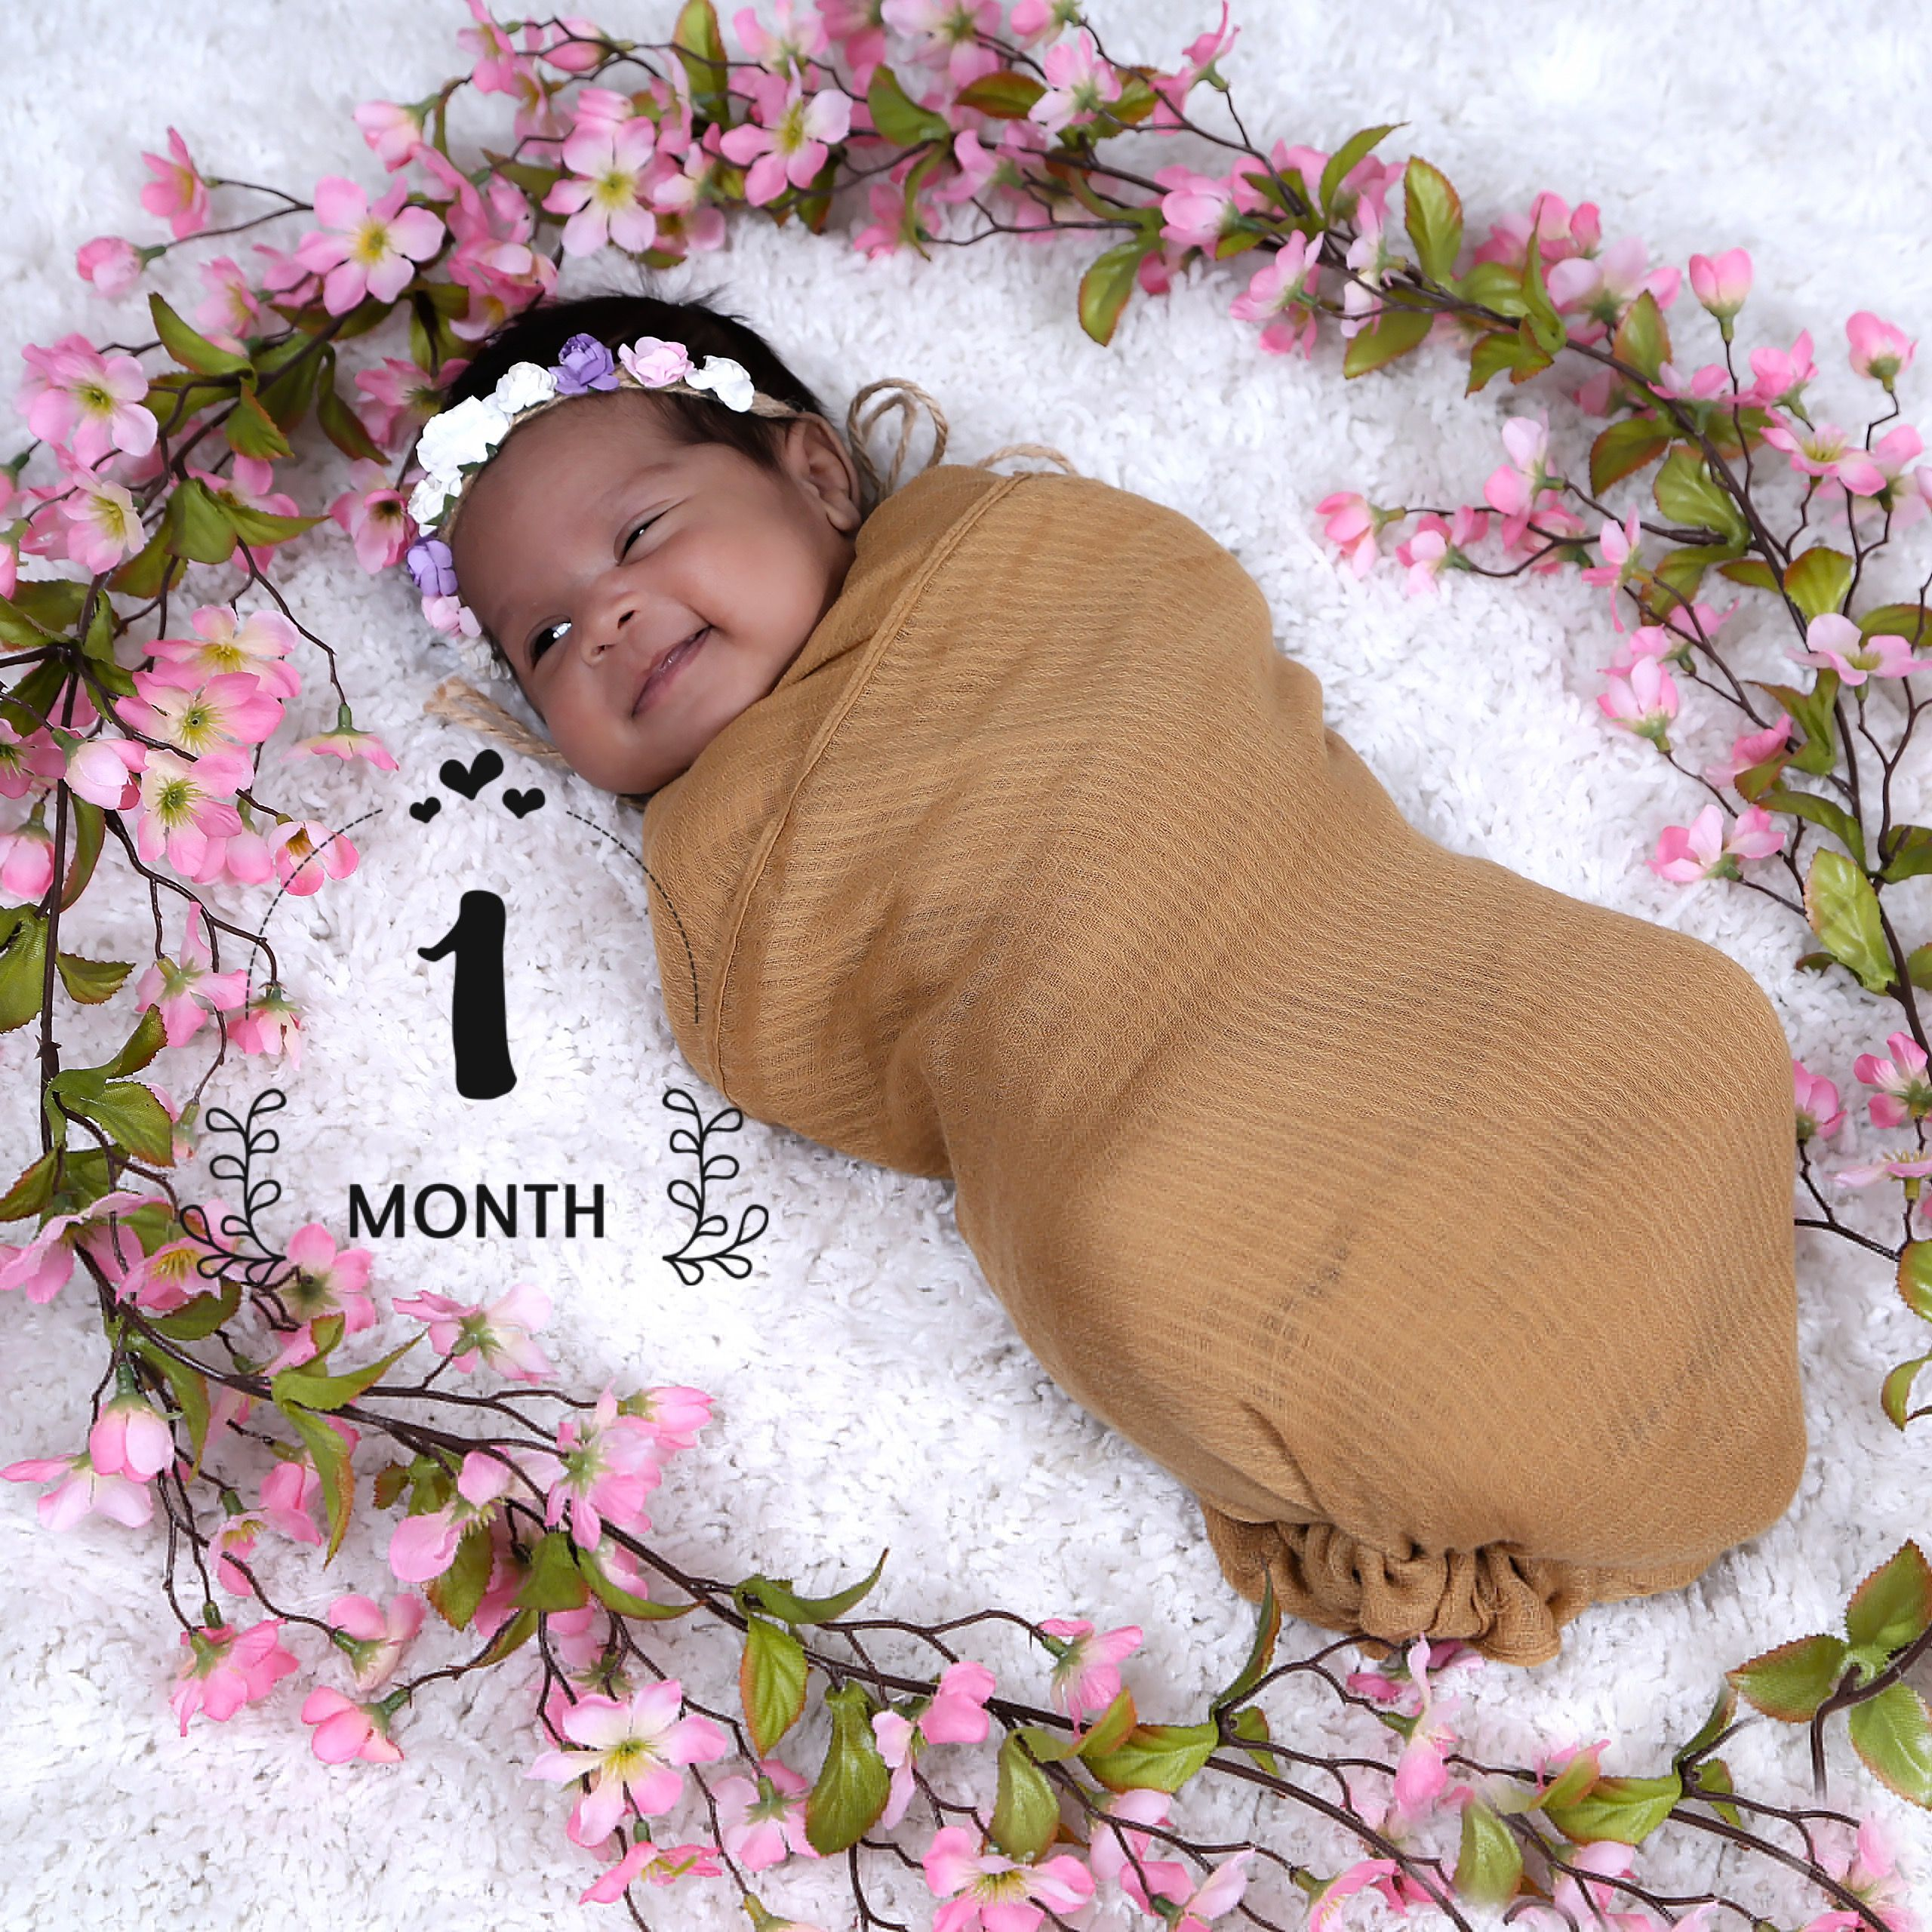 My sweet baby girl photo shoot 1 month old 1month babygirl photoshhot girl newborn